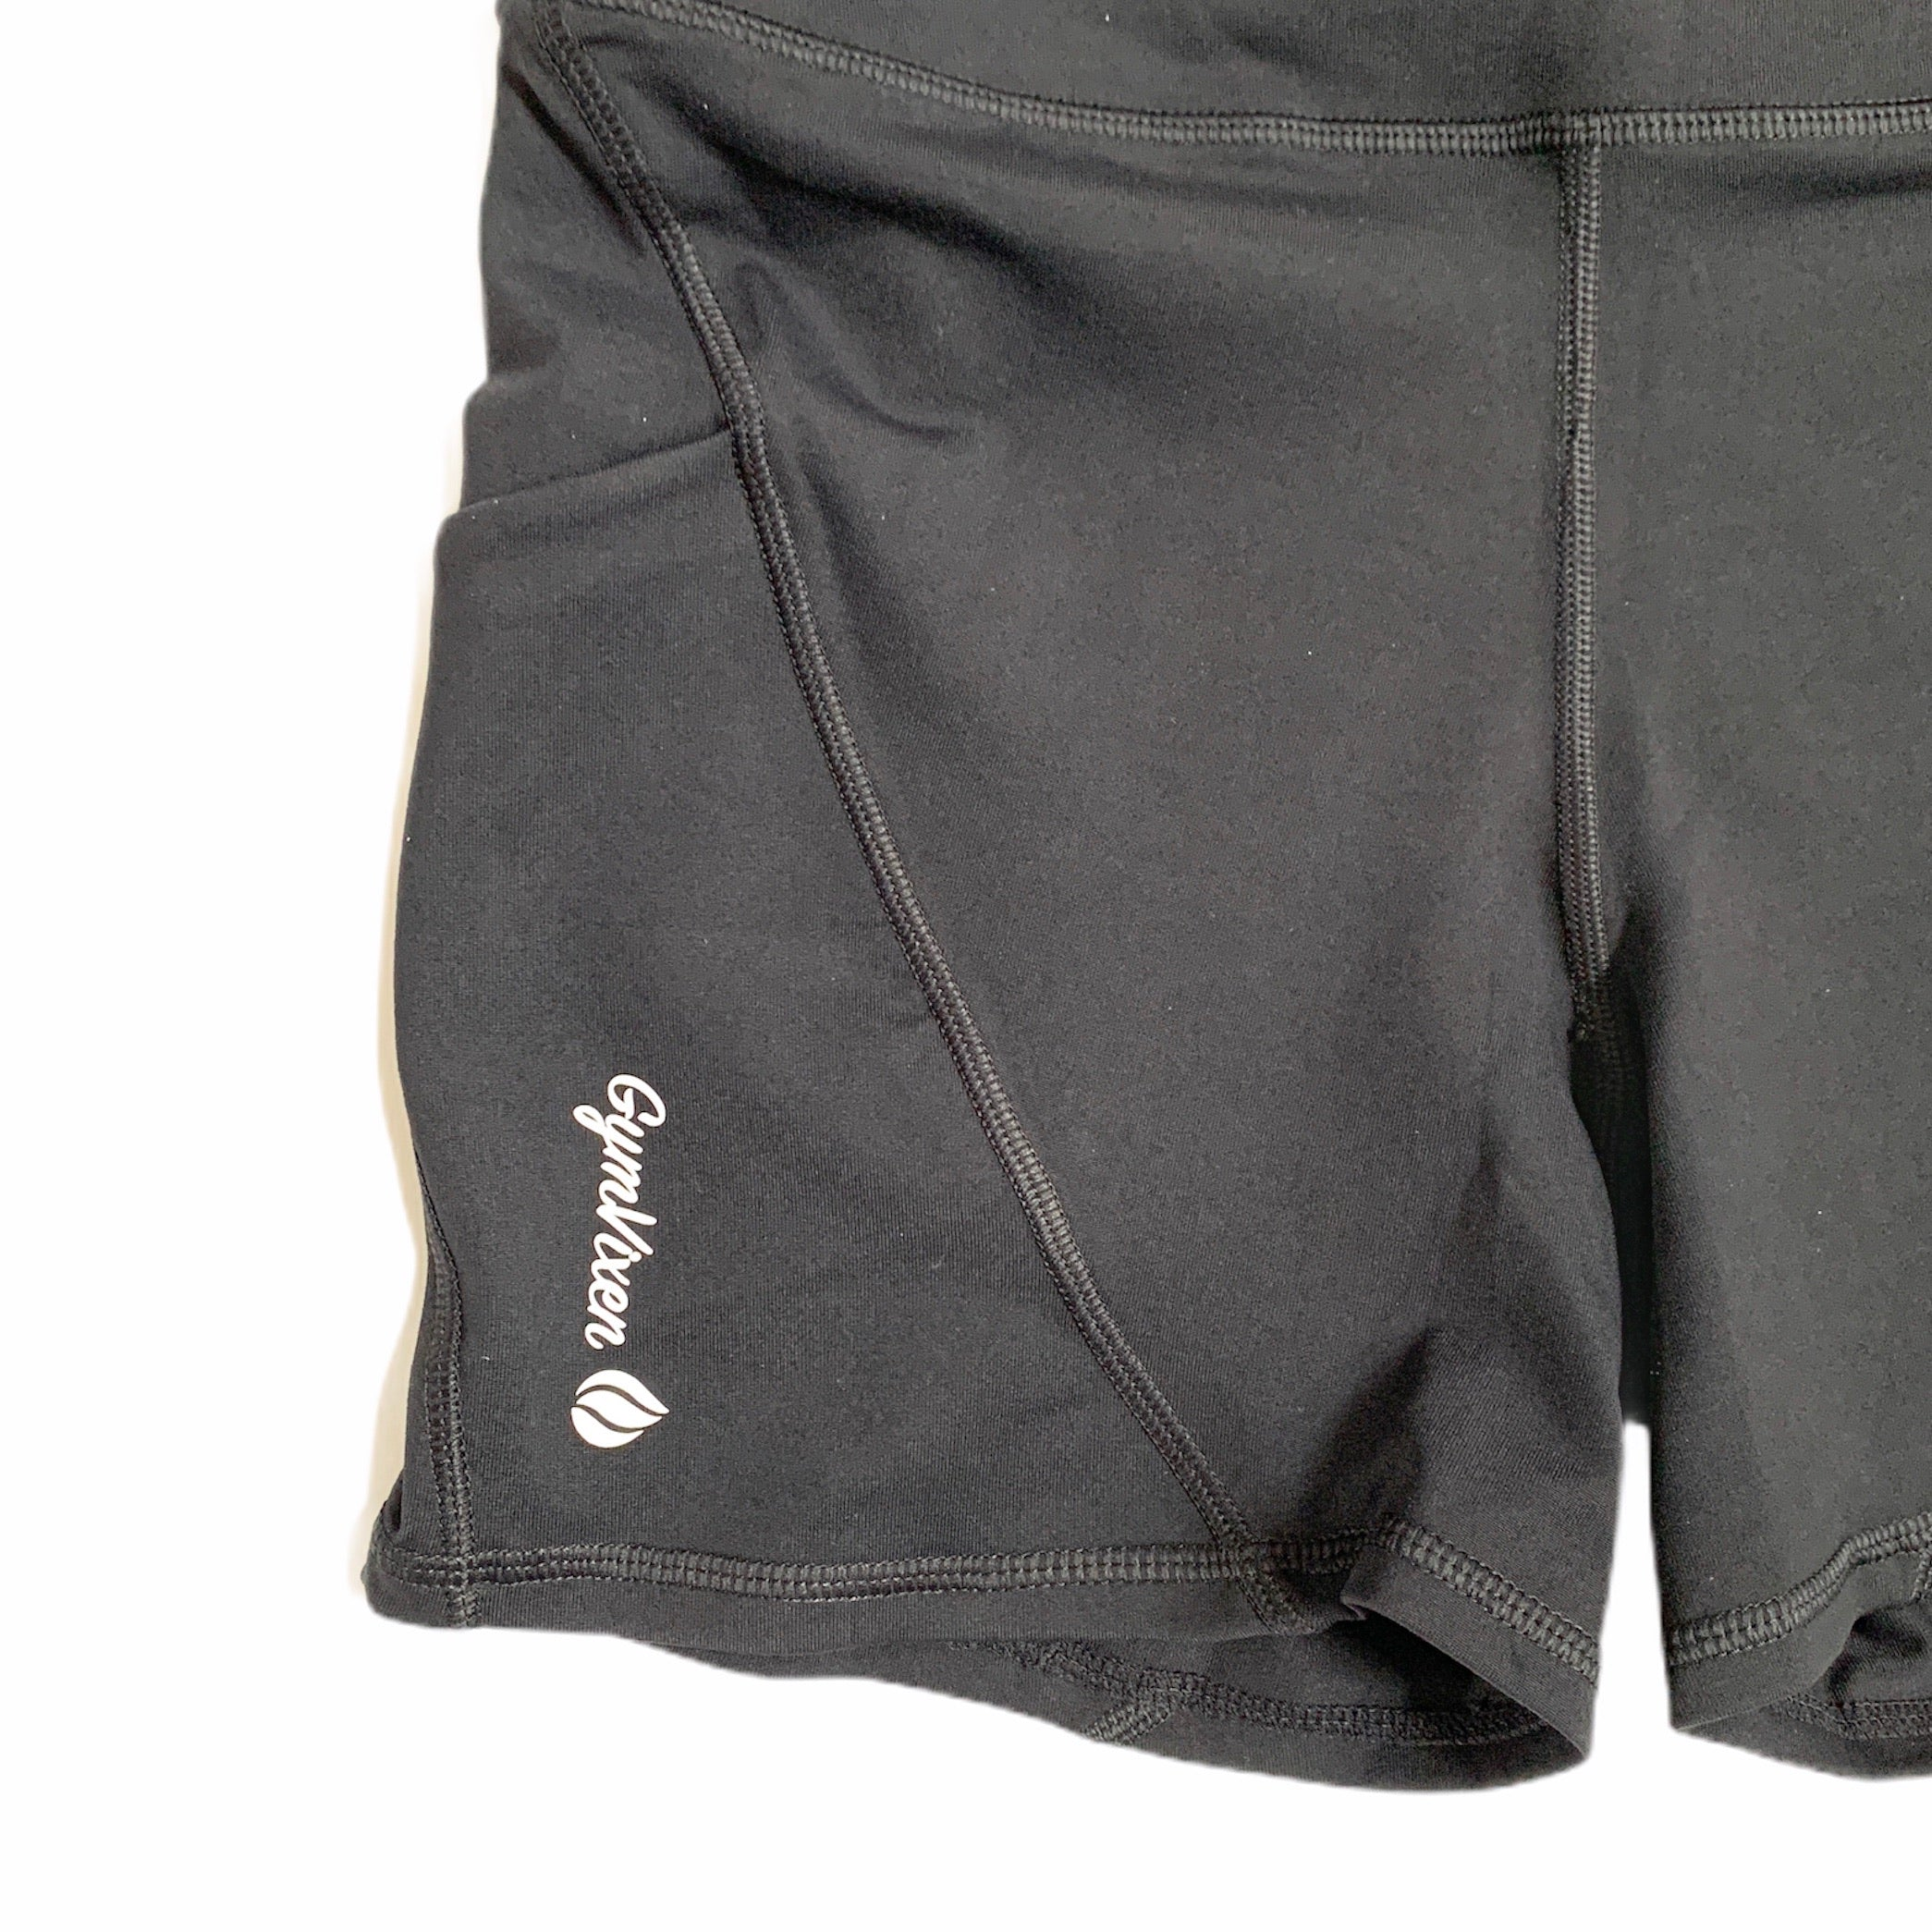 The Aphrodite Training Shorts